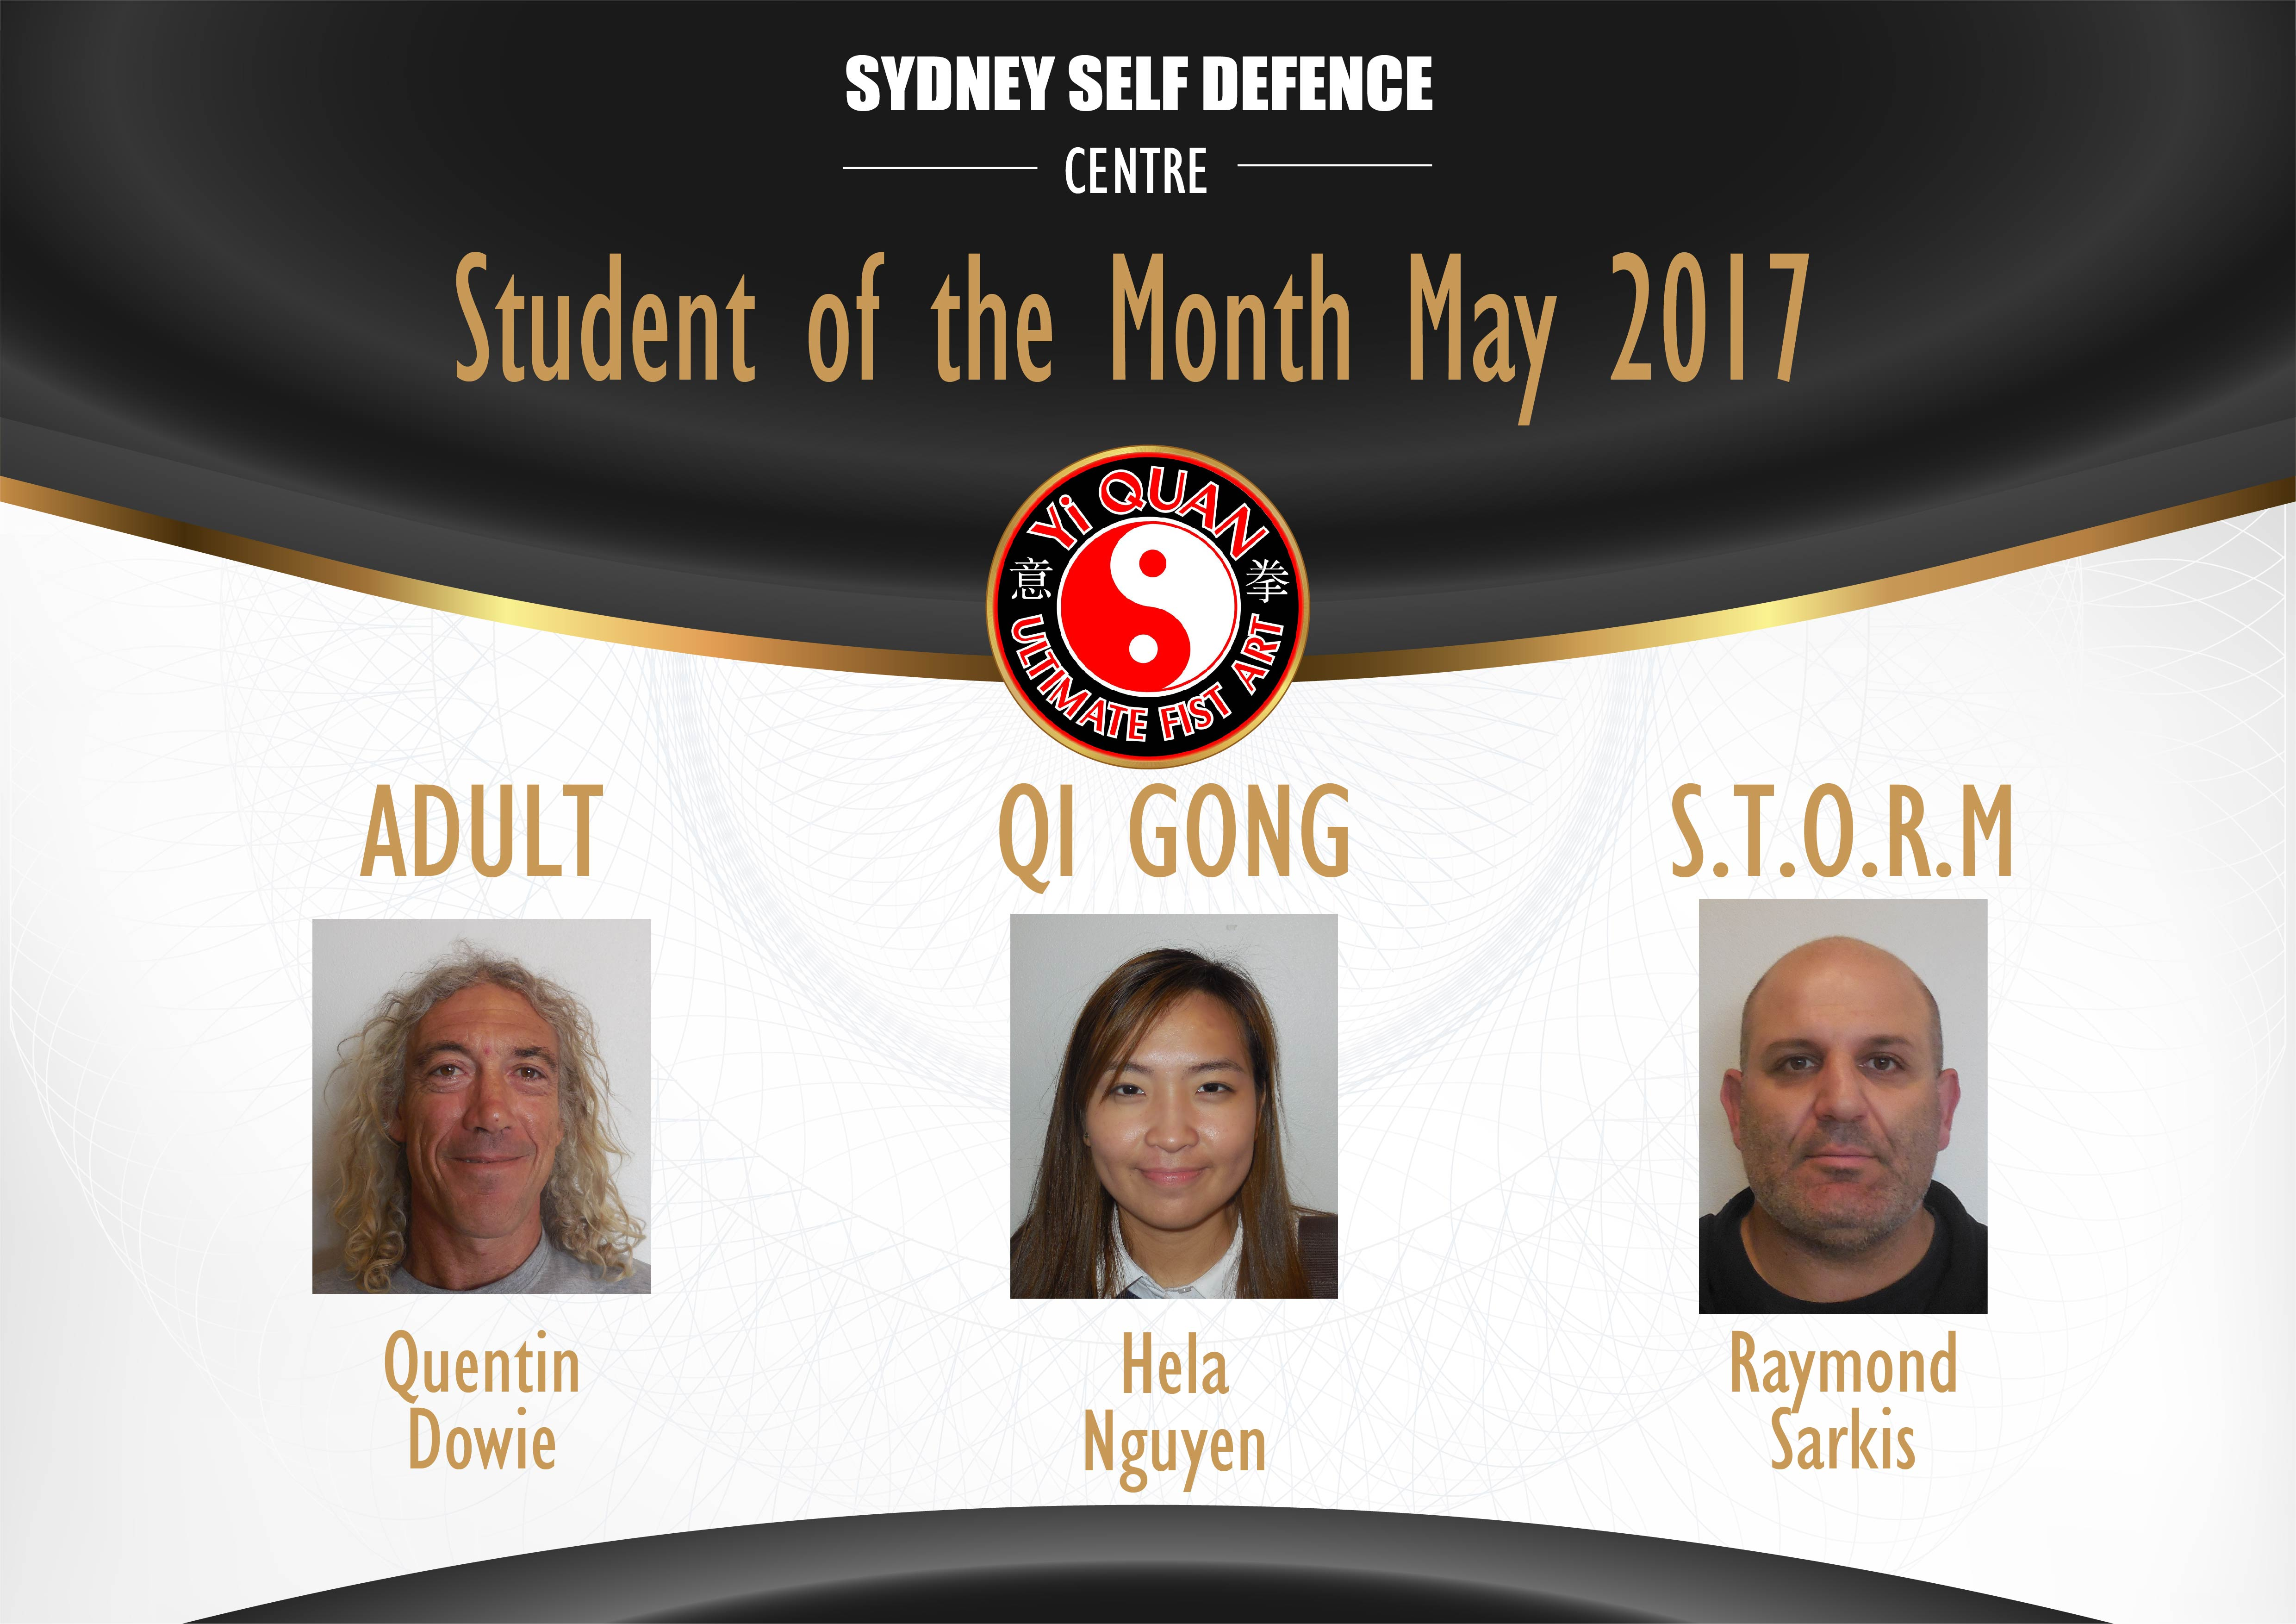 Sydney Self Defence Centre Students of the Month